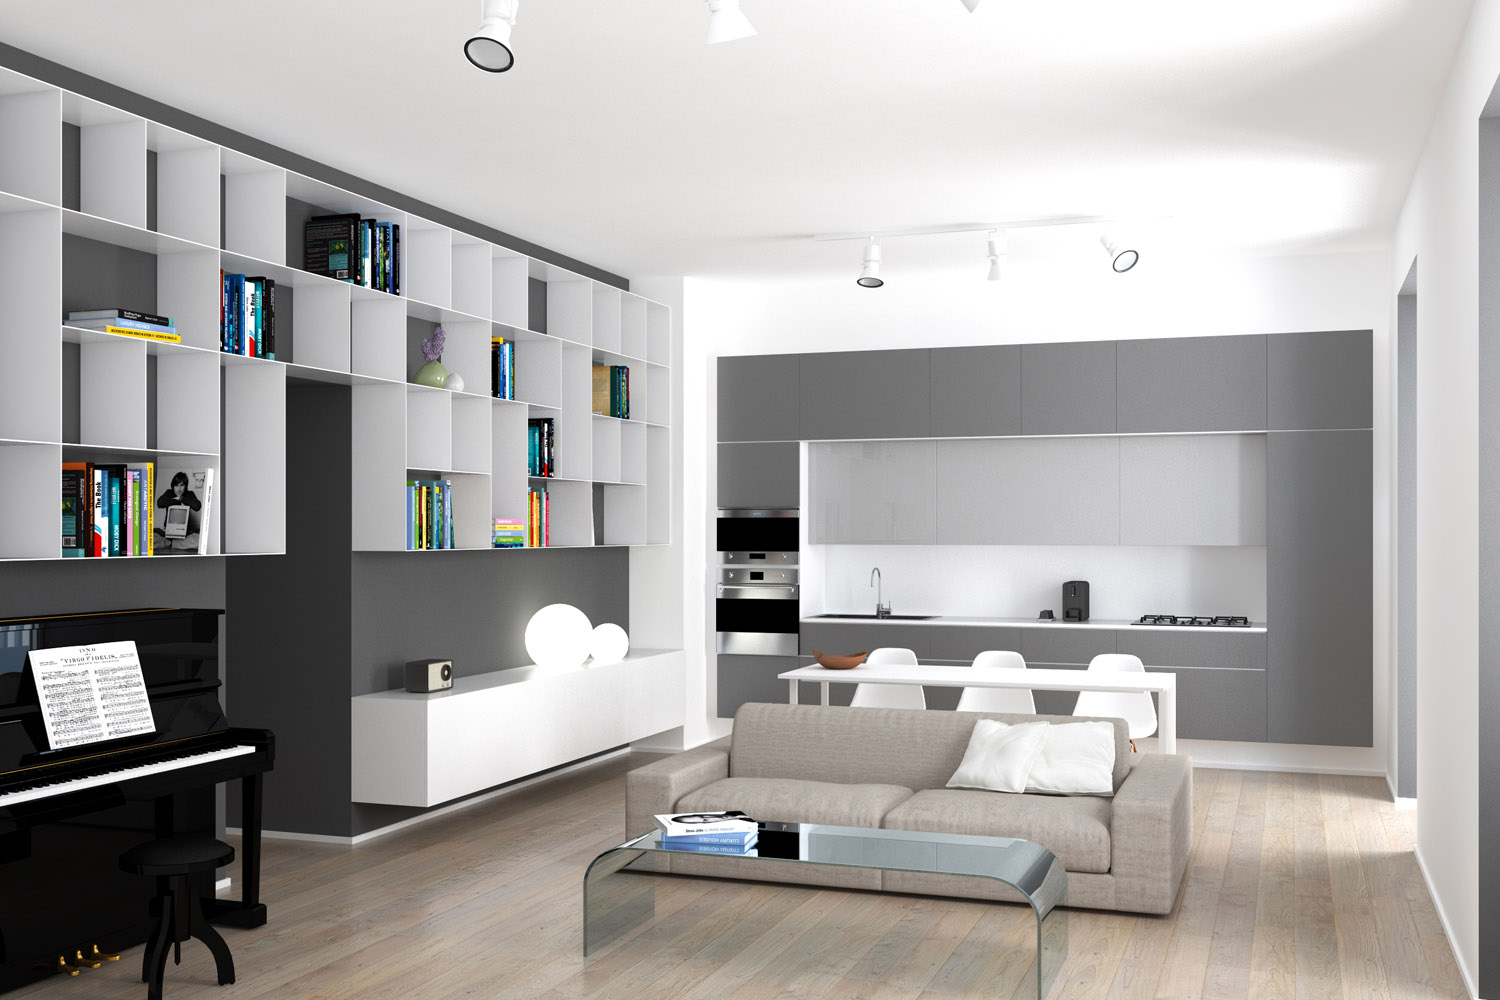 Render of the kitchen/living-room area Luca Peralta